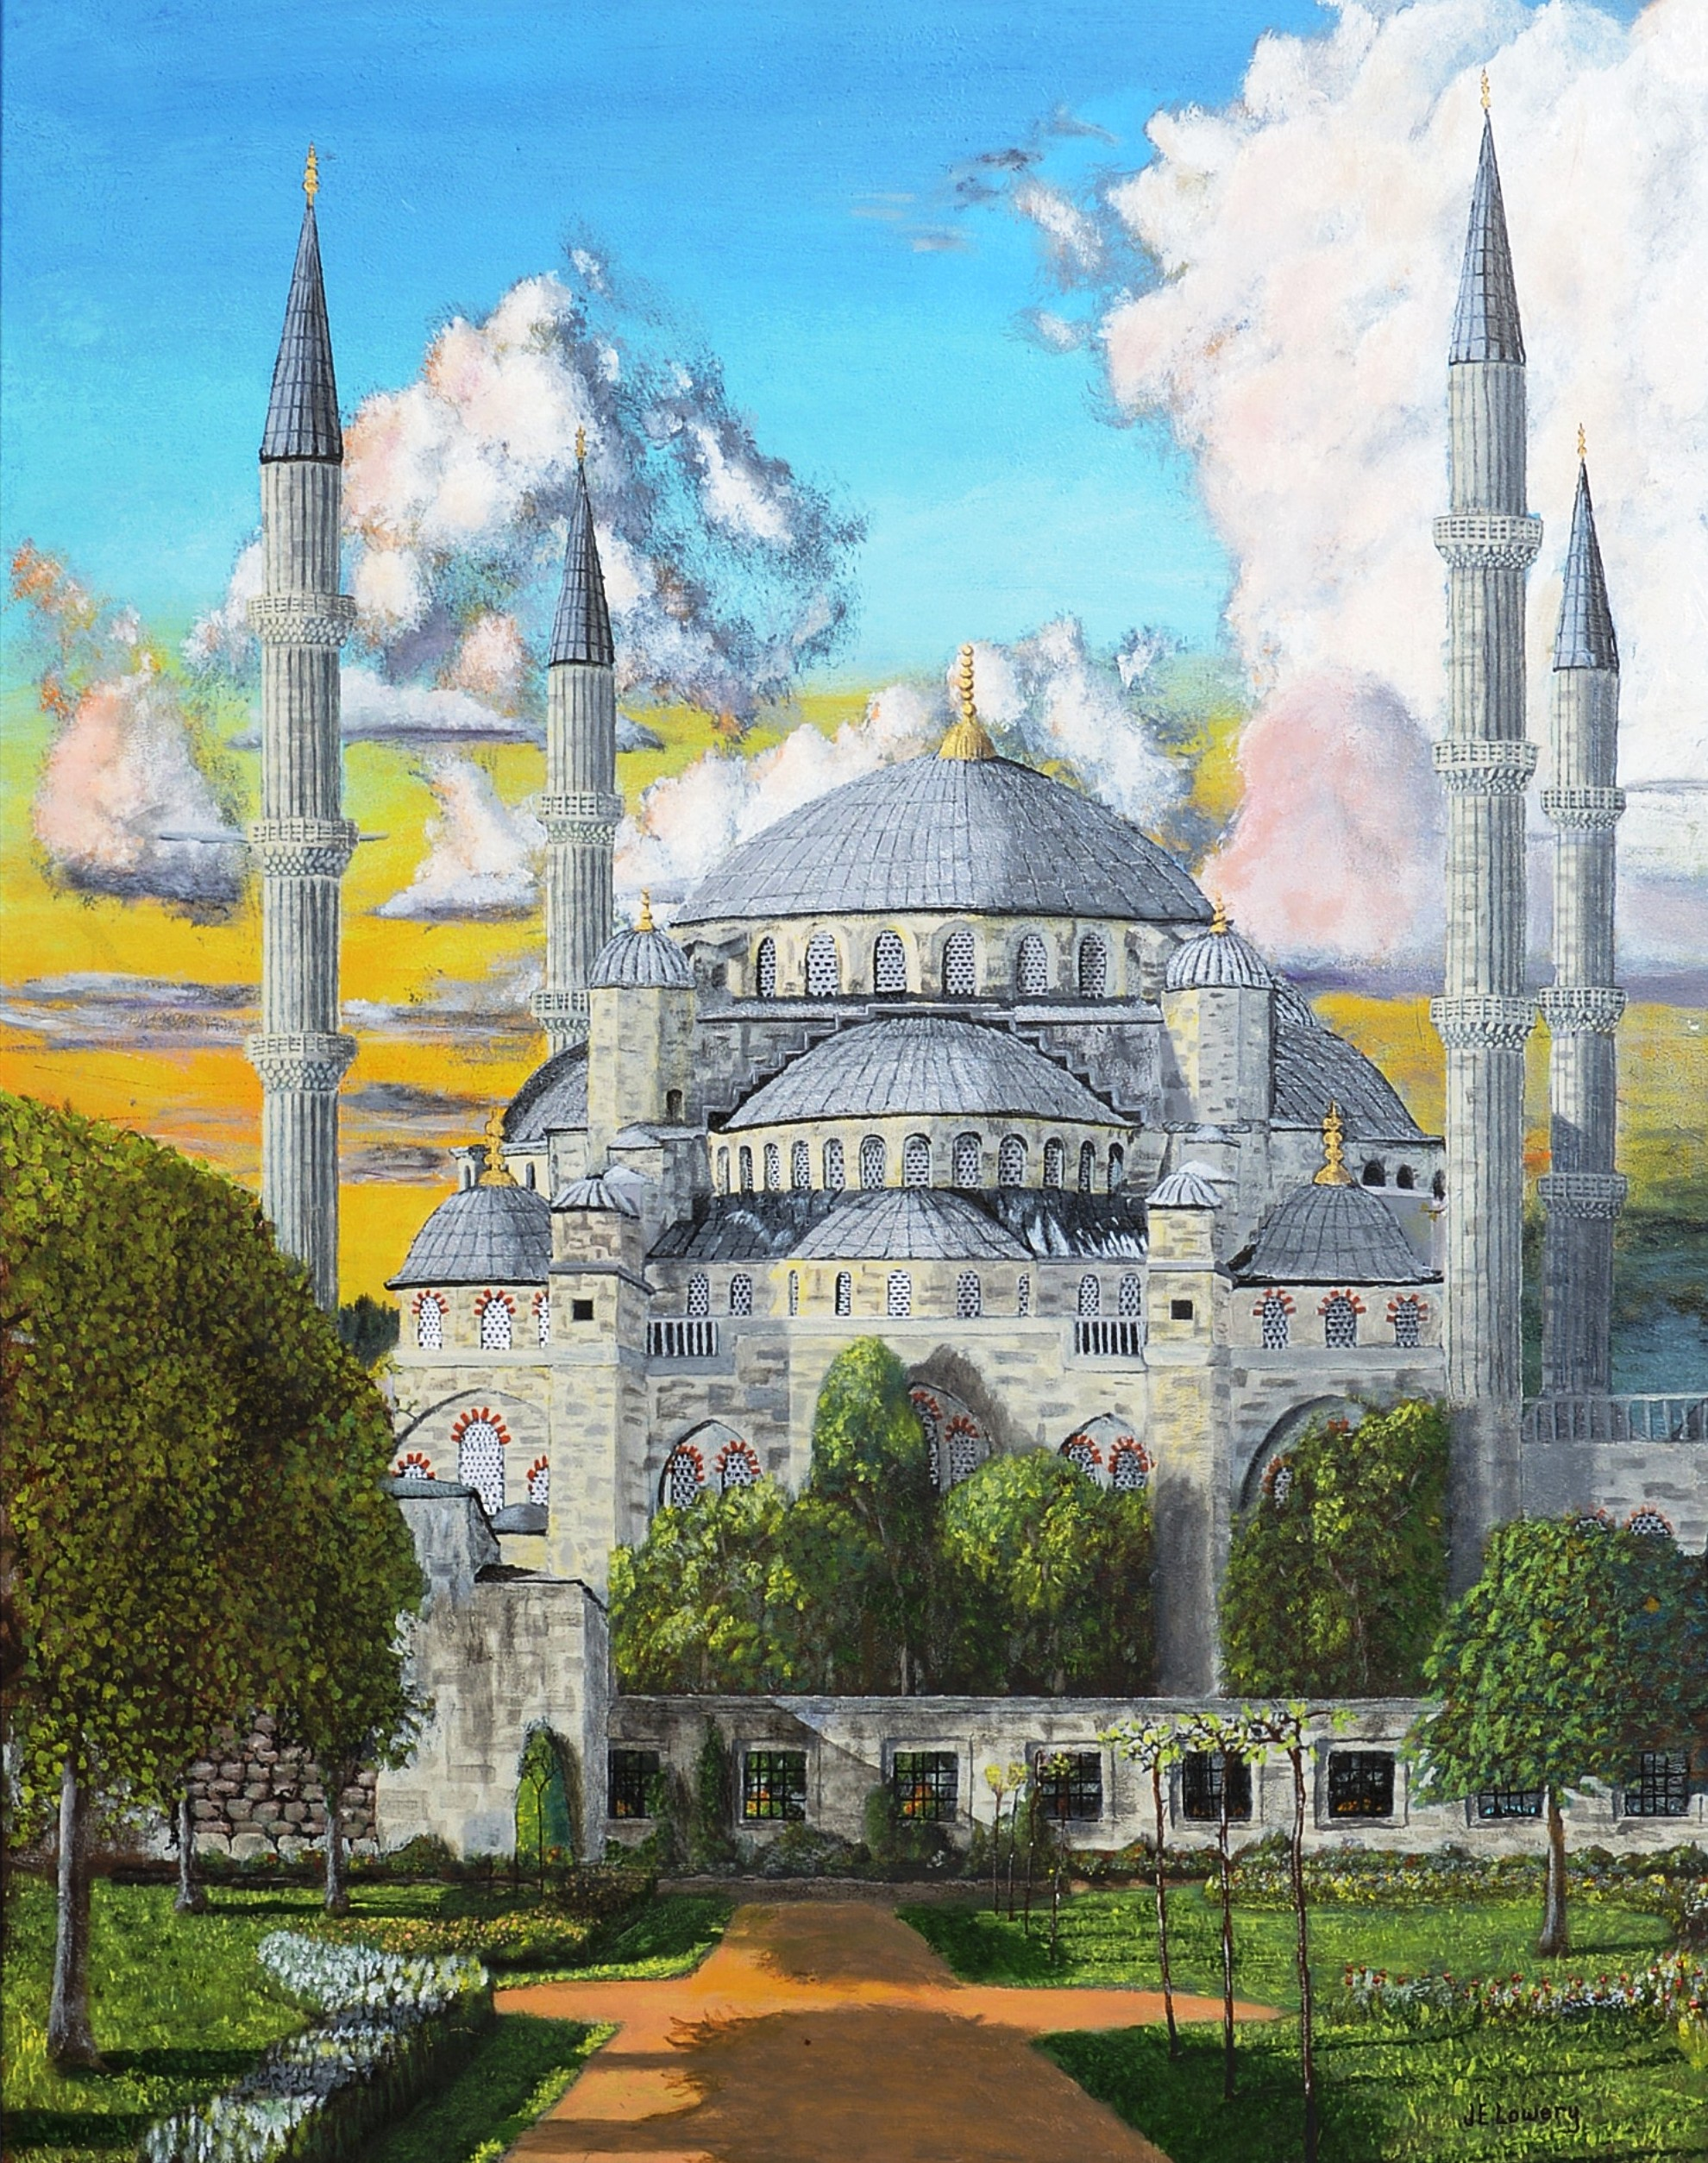 Blue Mosque artwork by James Lowery - art listed for sale on Artplode